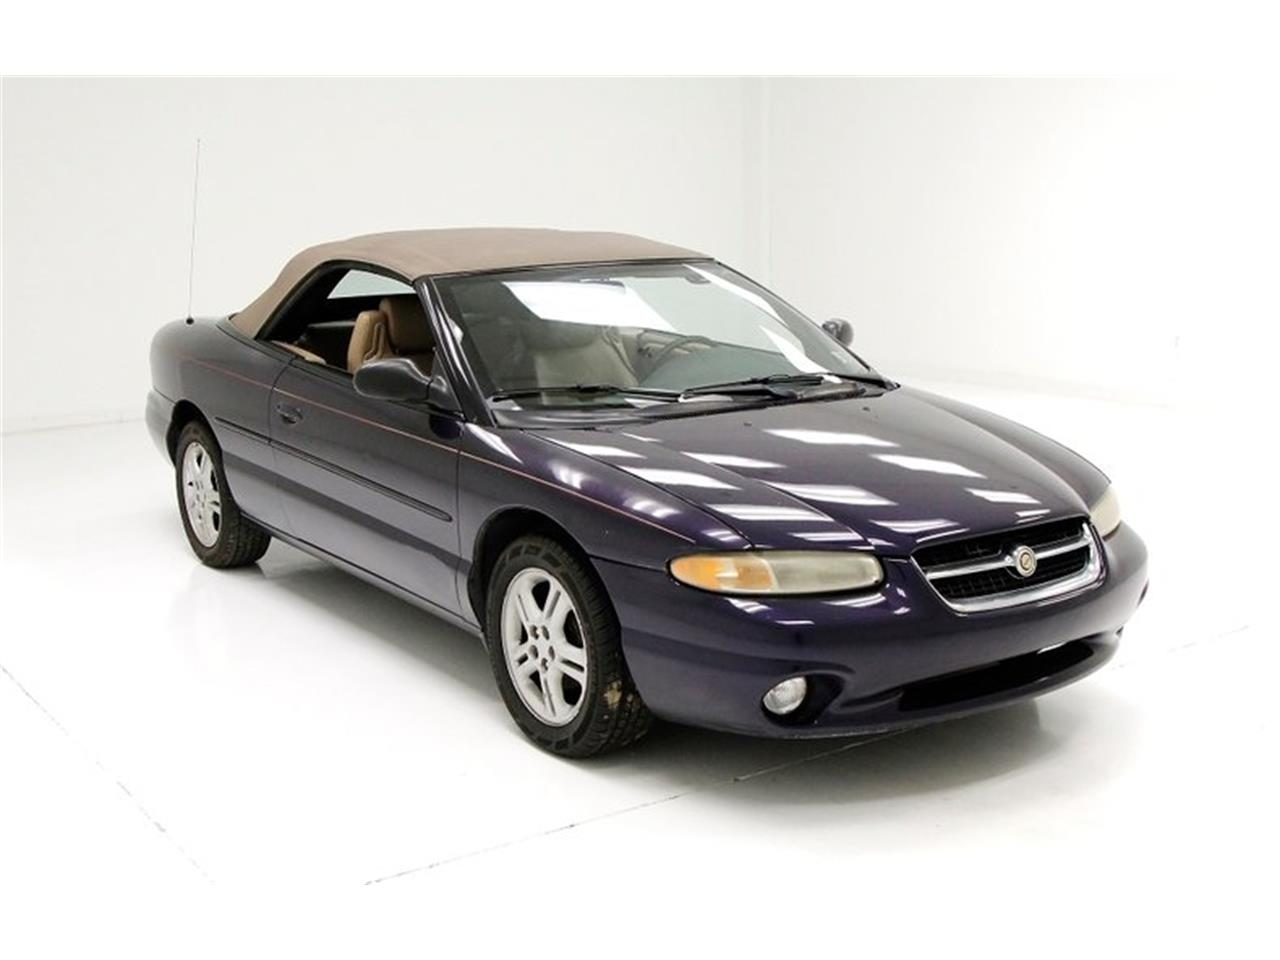 Large Picture of 1997 Chrysler Sebring located in Pennsylvania - LVUB